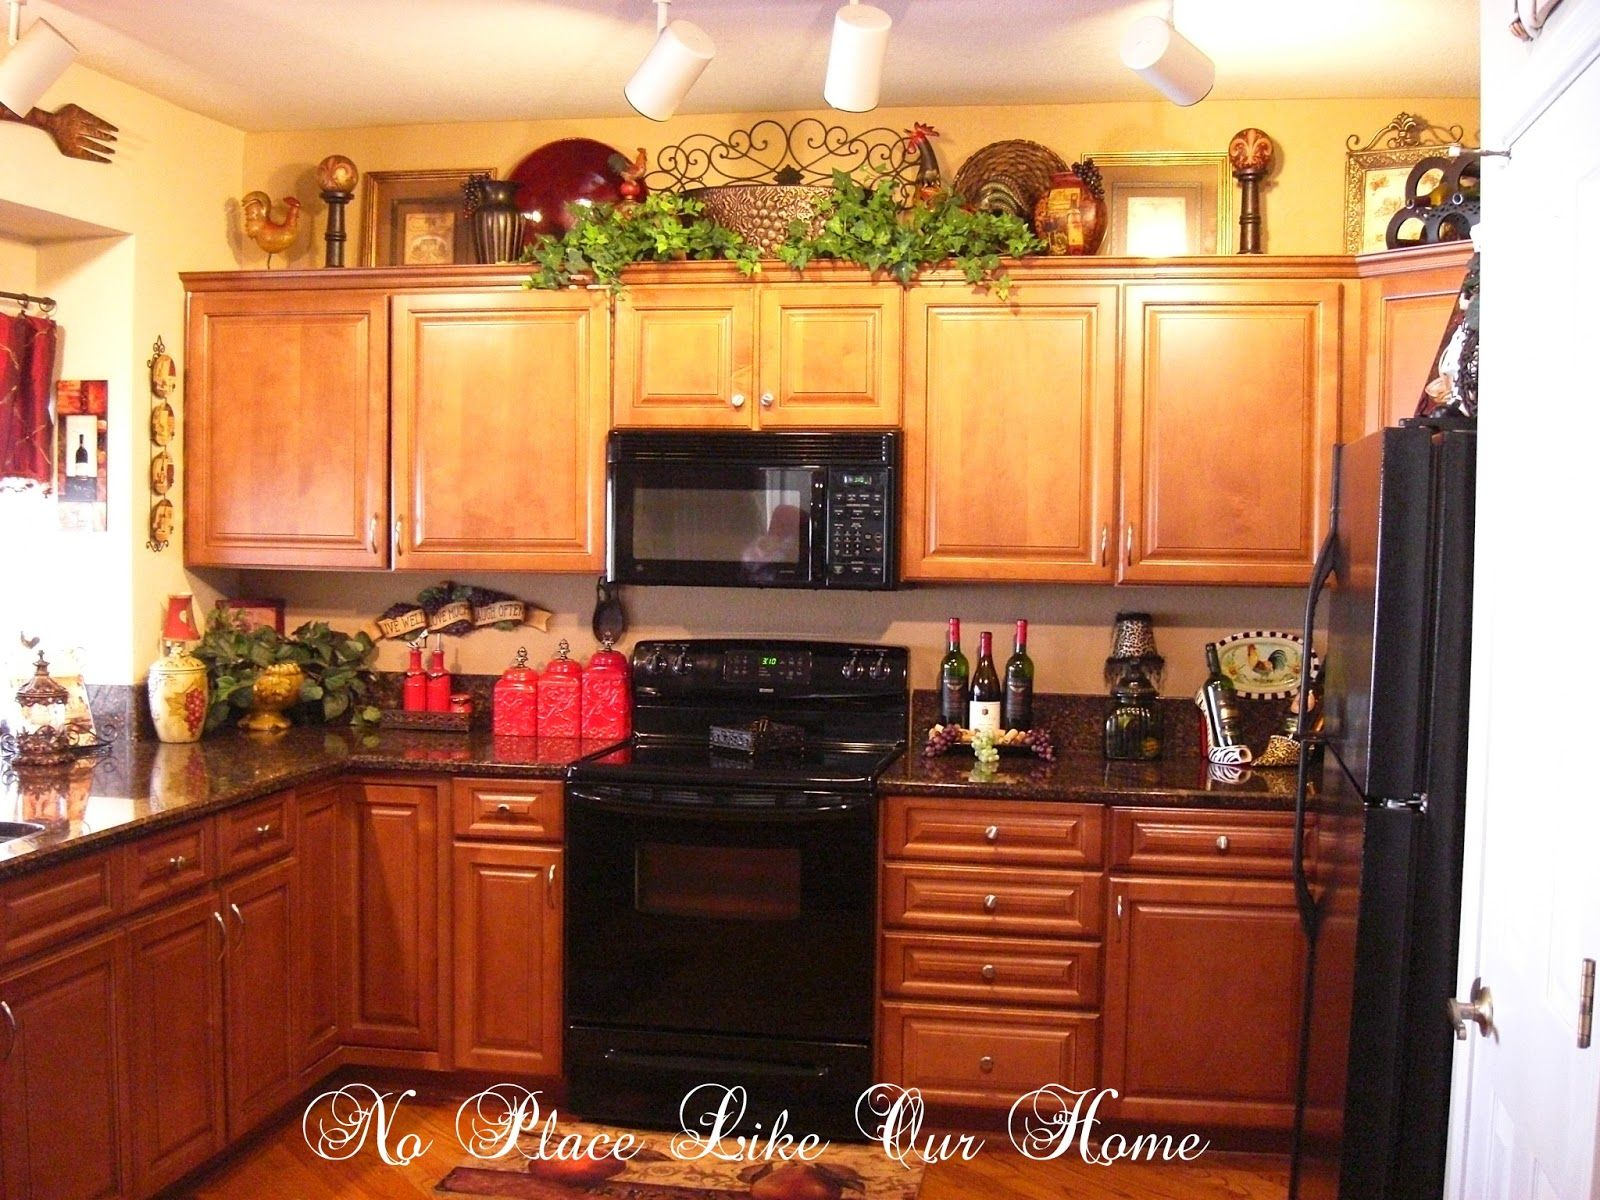 Uncategorized Decorating Above Kitchen Cabinets decorating above kitchen cabinets tuscany heres a closer look at the top of cabinets